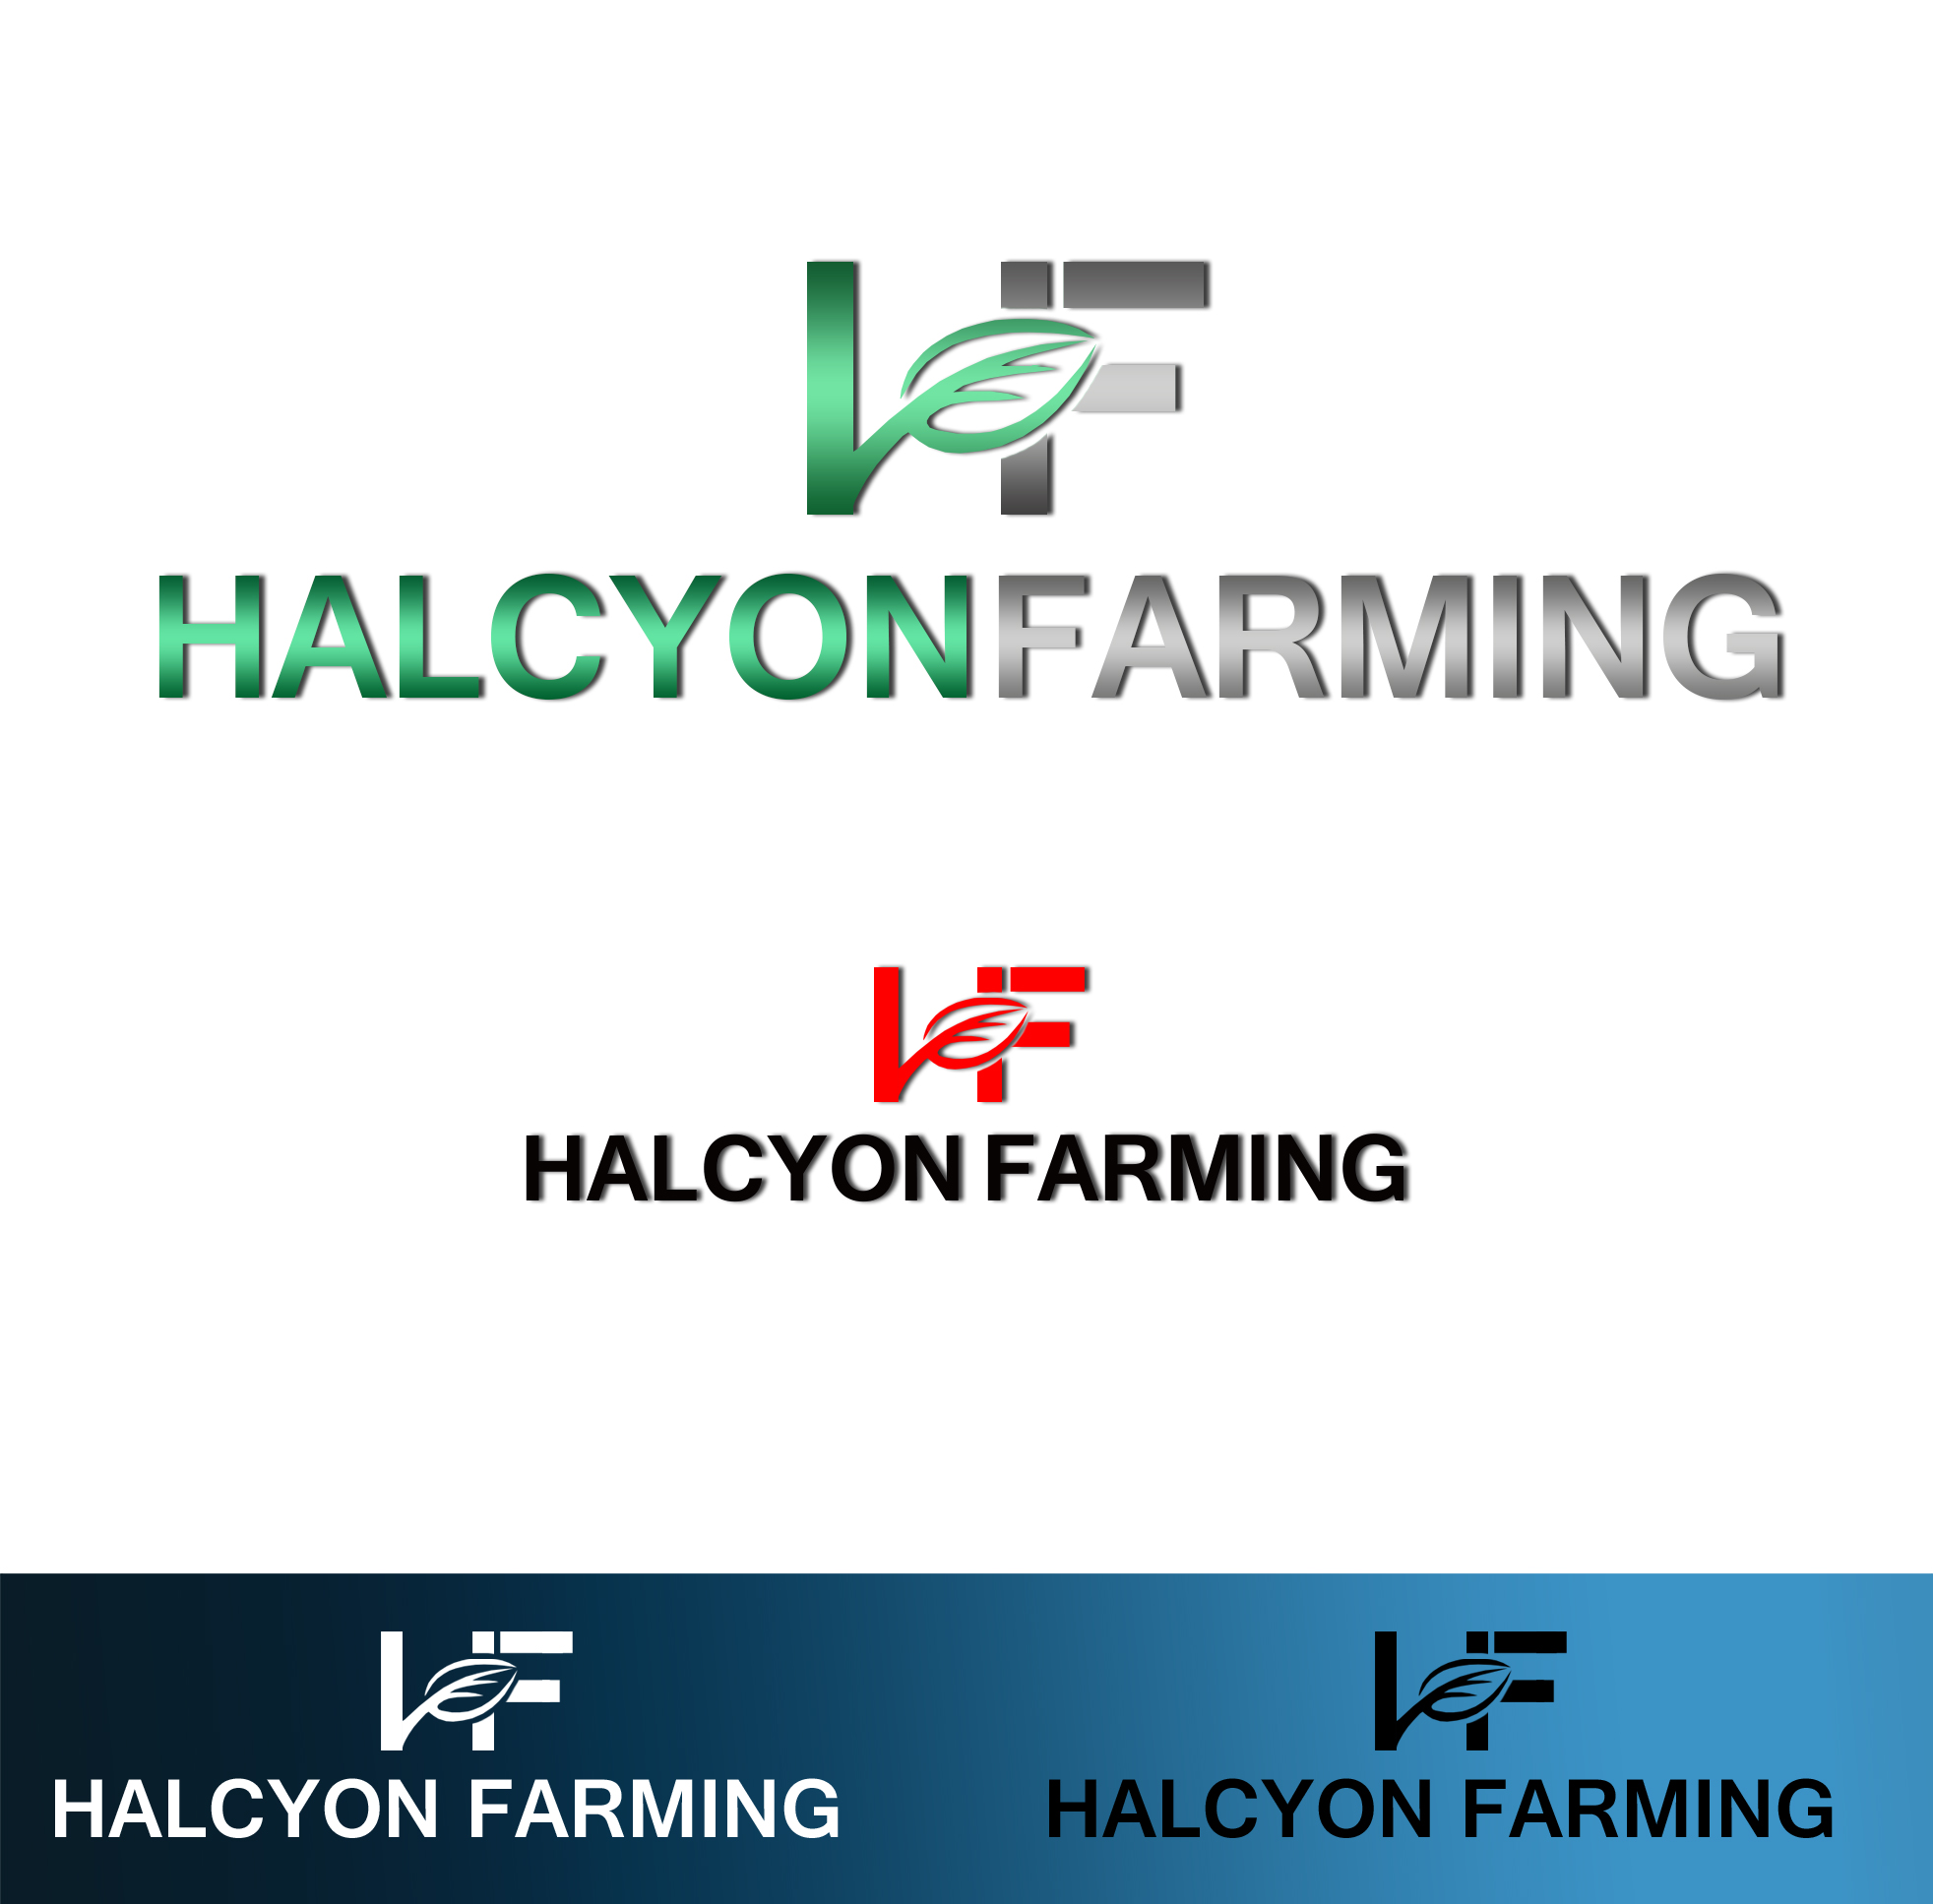 Logo Design by JSDESIGNGROUP - Entry No. 32 in the Logo Design Contest Creative Logo Design for Halcyon Farming.